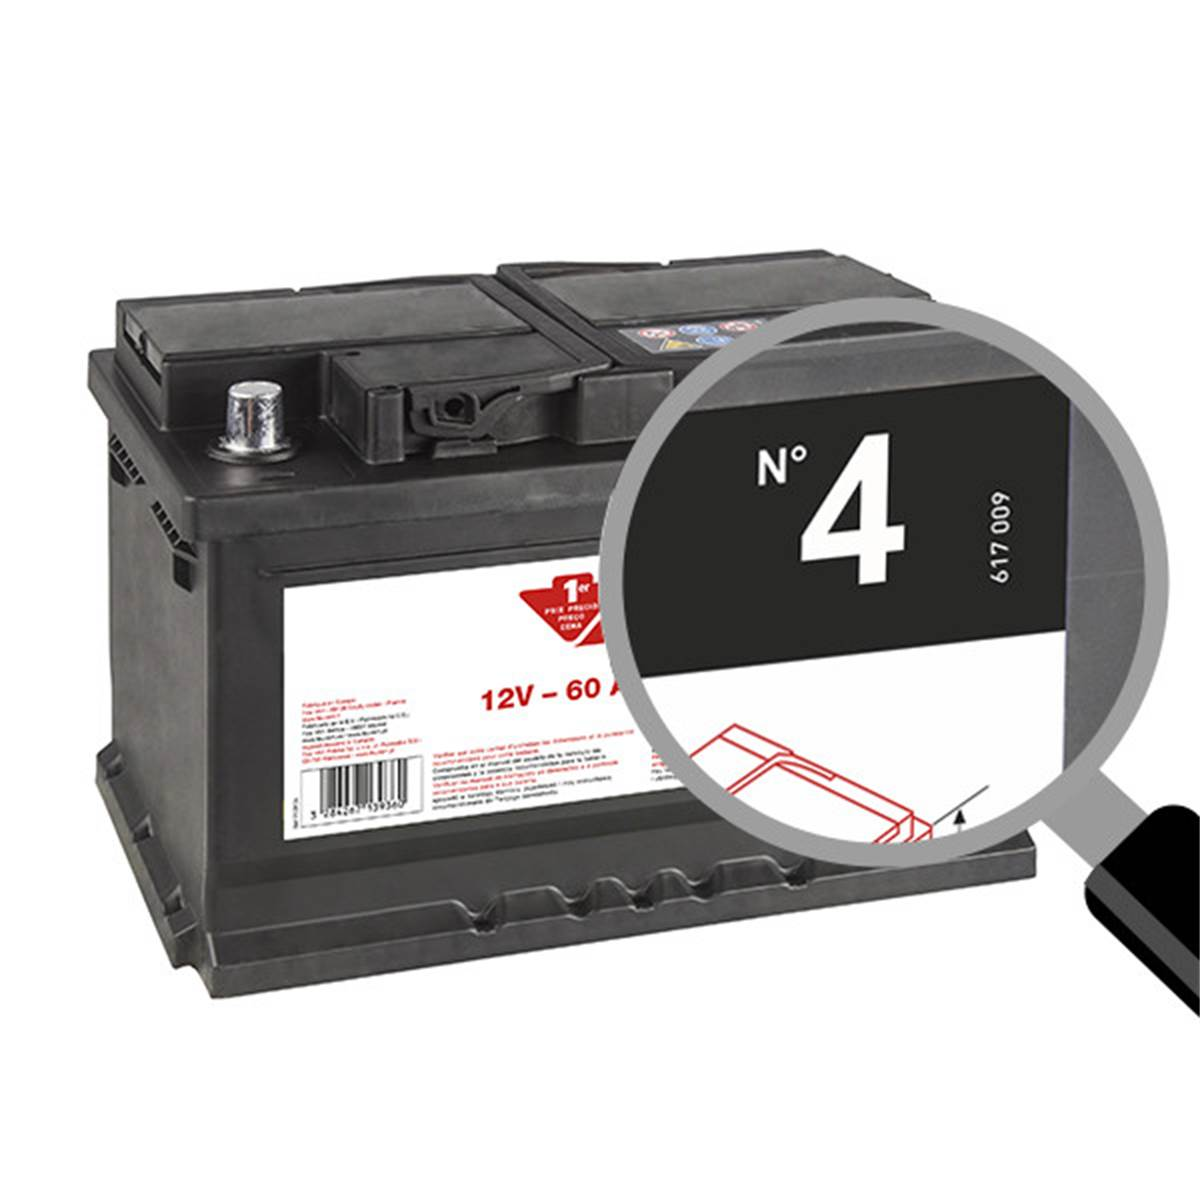 Batterie voiture Contact n°4 - 56Ah / 480A - 12V